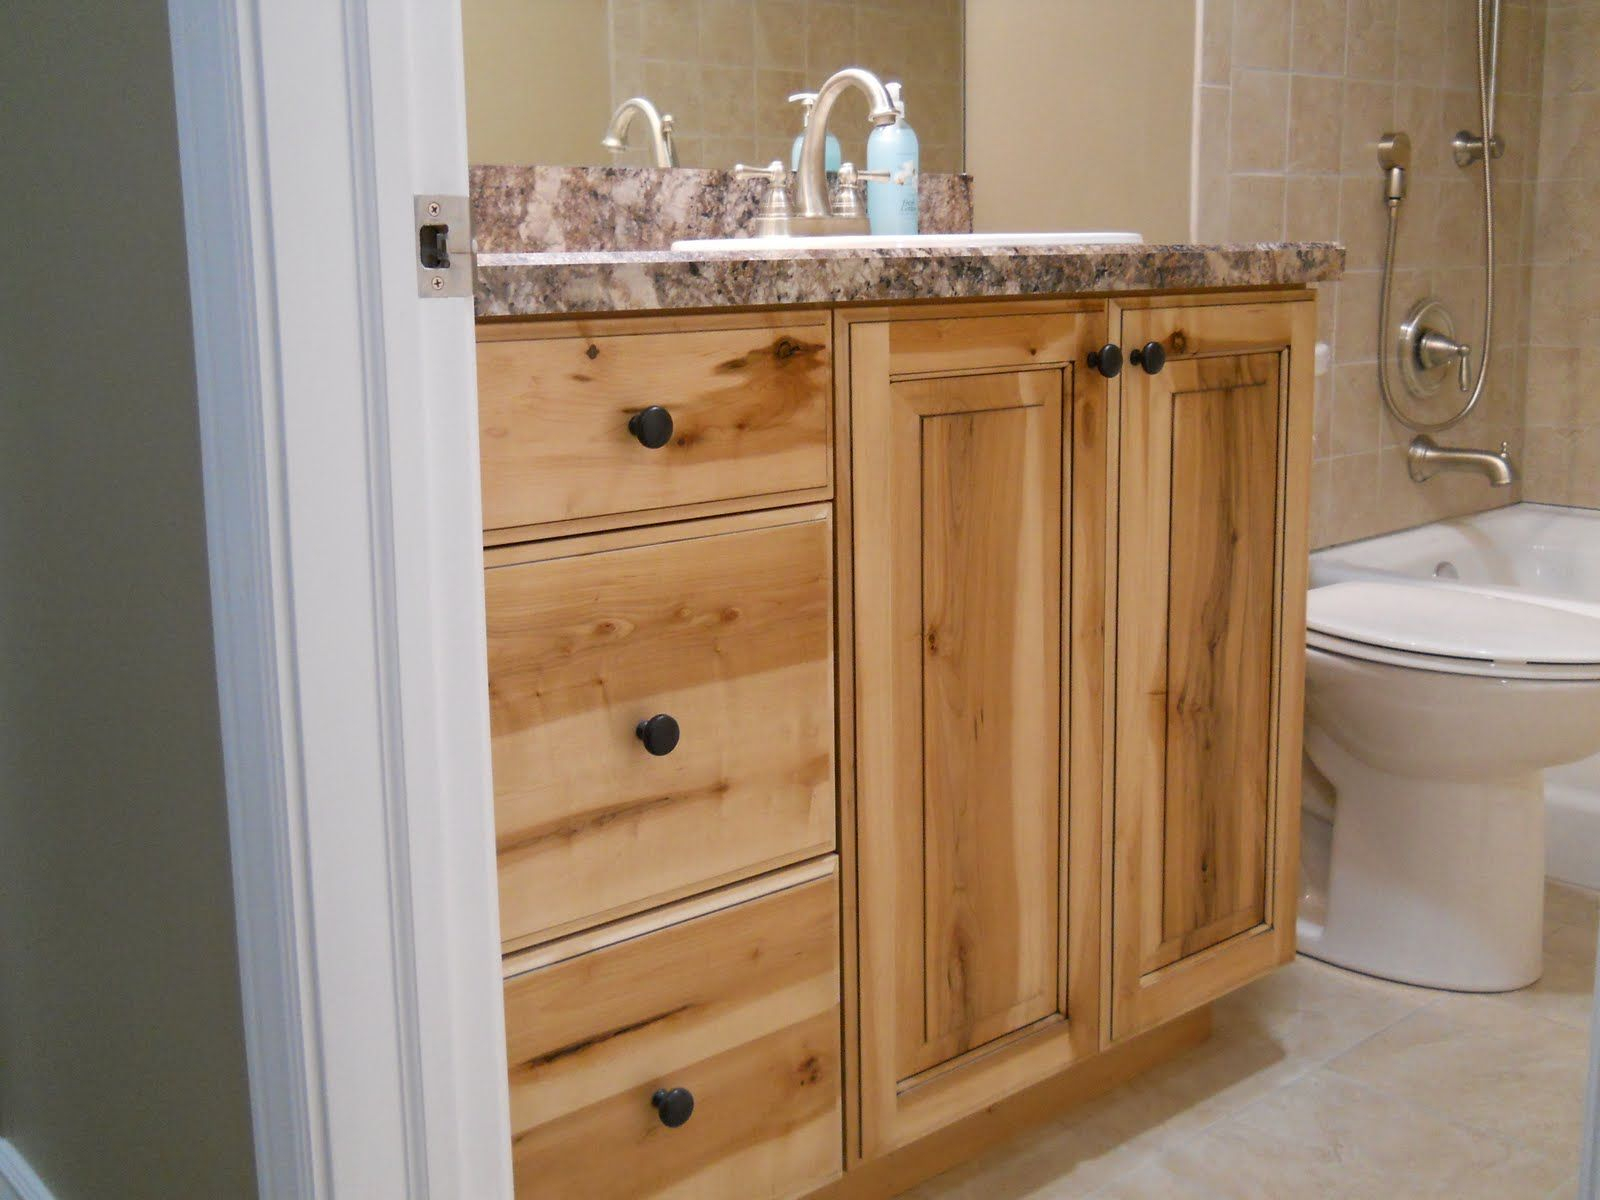 Knotty Pine Cabinetrustic Bathroom Vanities Newly Finished within size 1600 X 1200